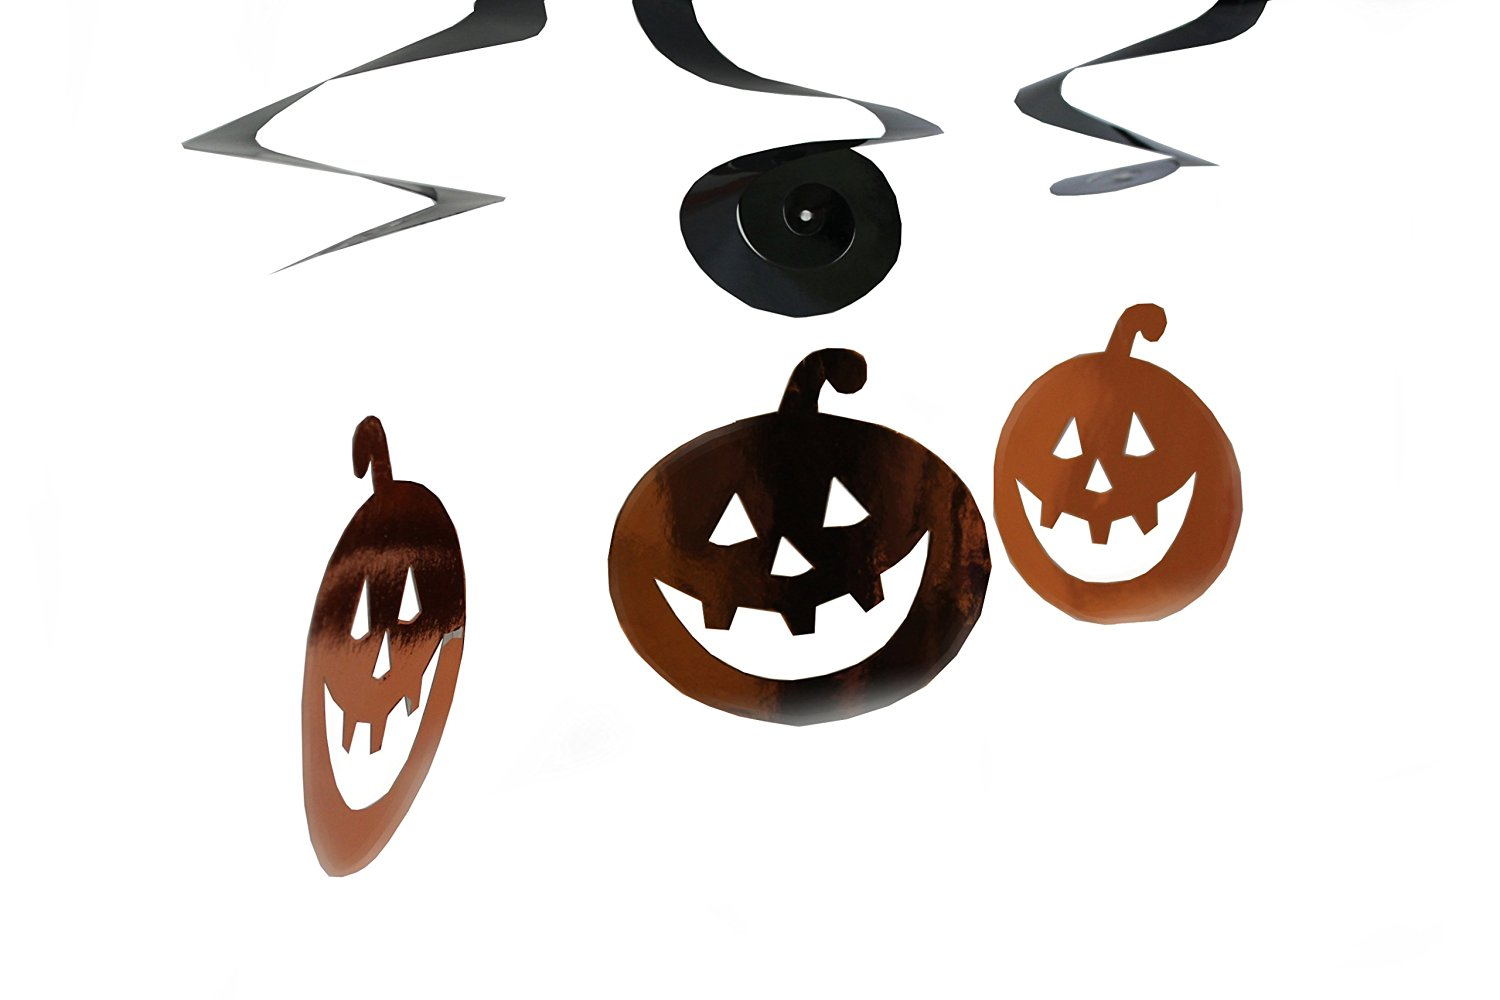 Halloween deko 3er set sortiert l nge ca 60 cm for Mottoparty deko